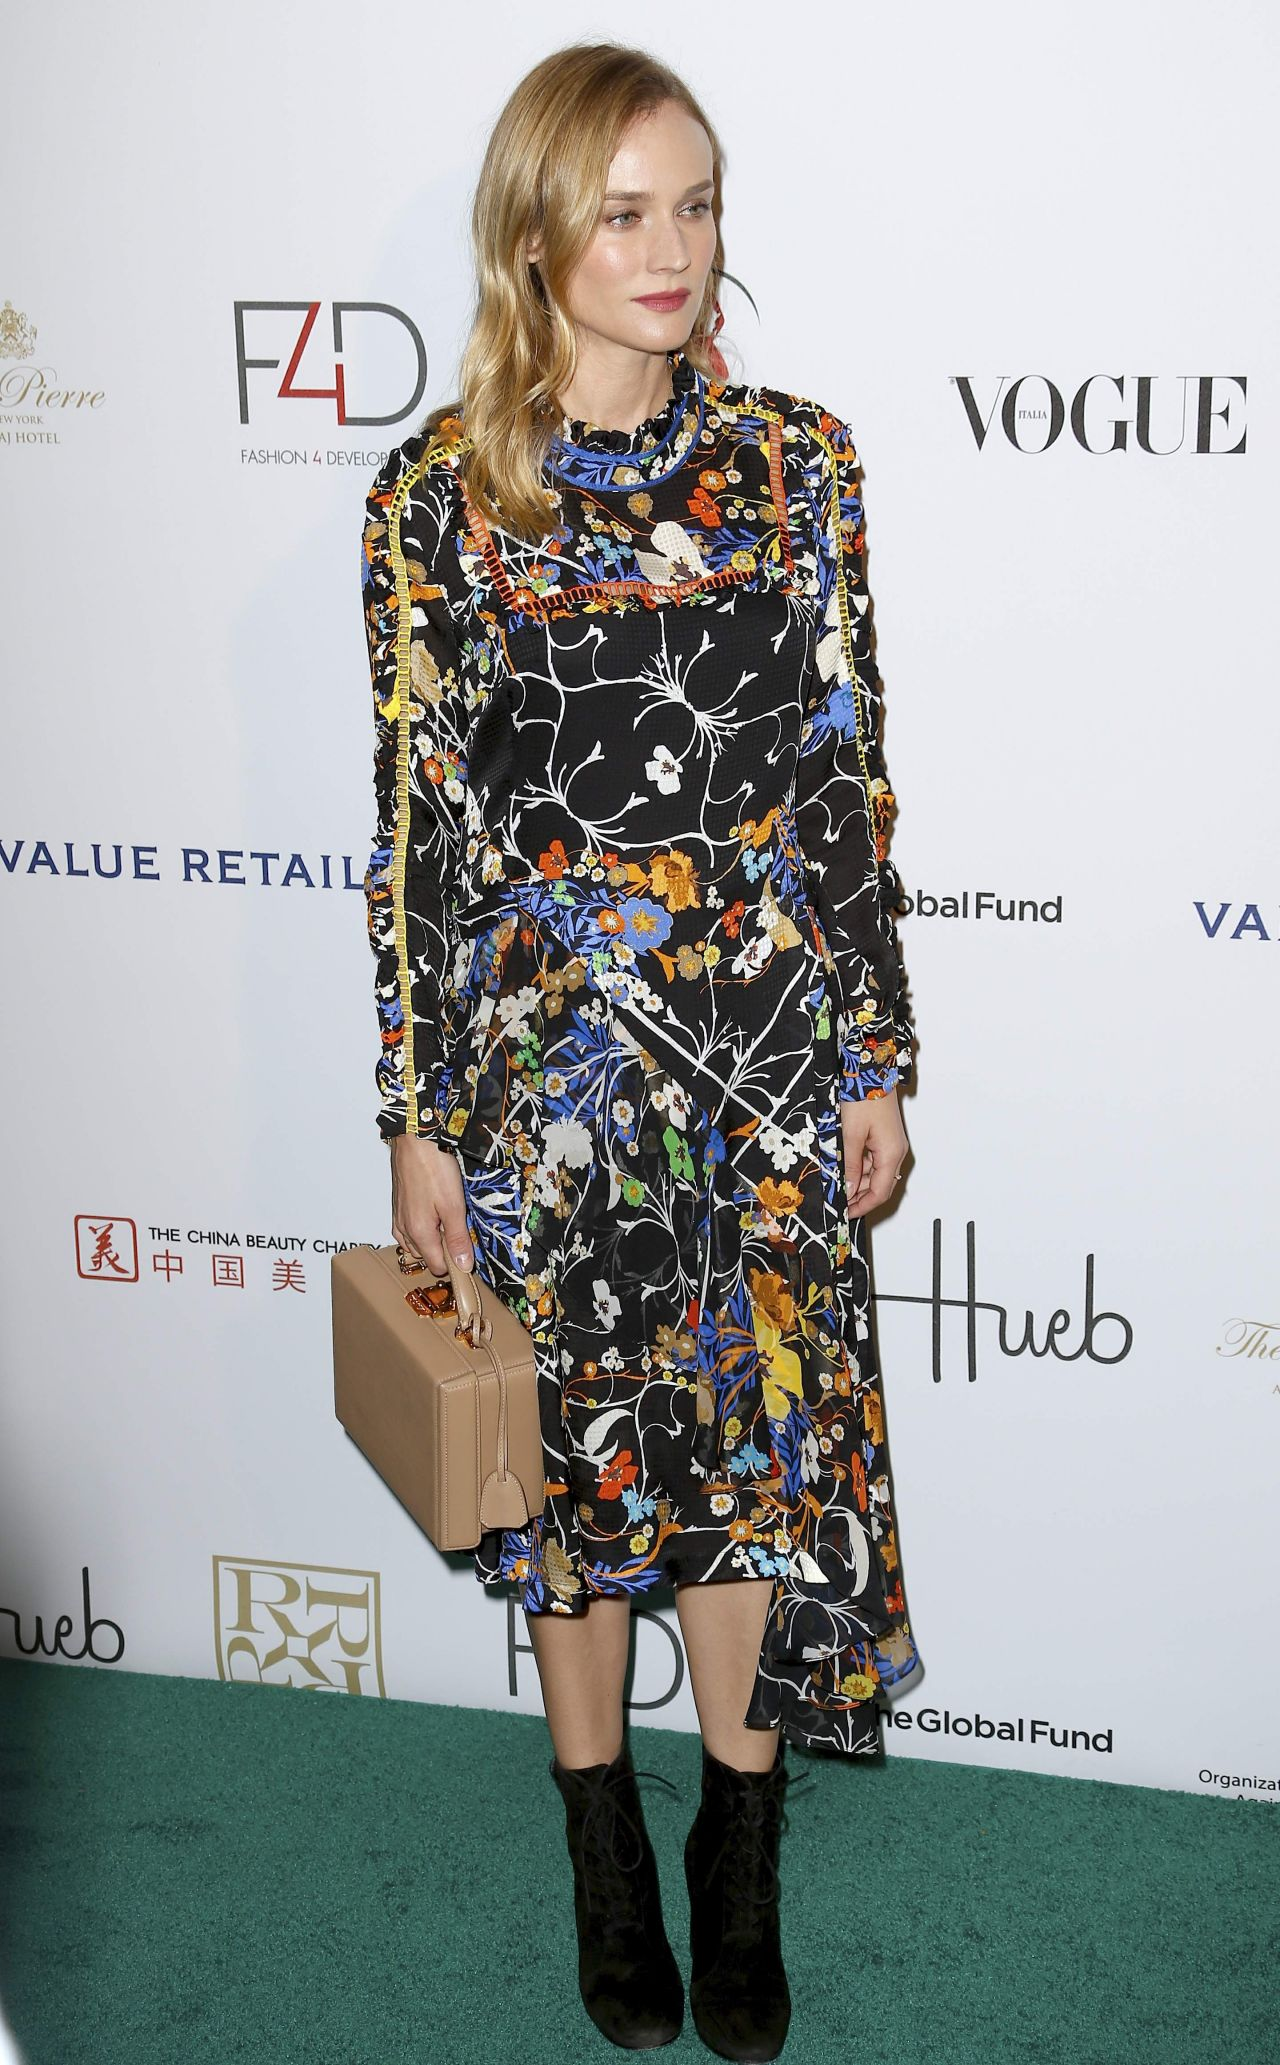 diane-kruger-2015-fashion-4-development-s-official-first-ladies-luncheon-in-nyc_5